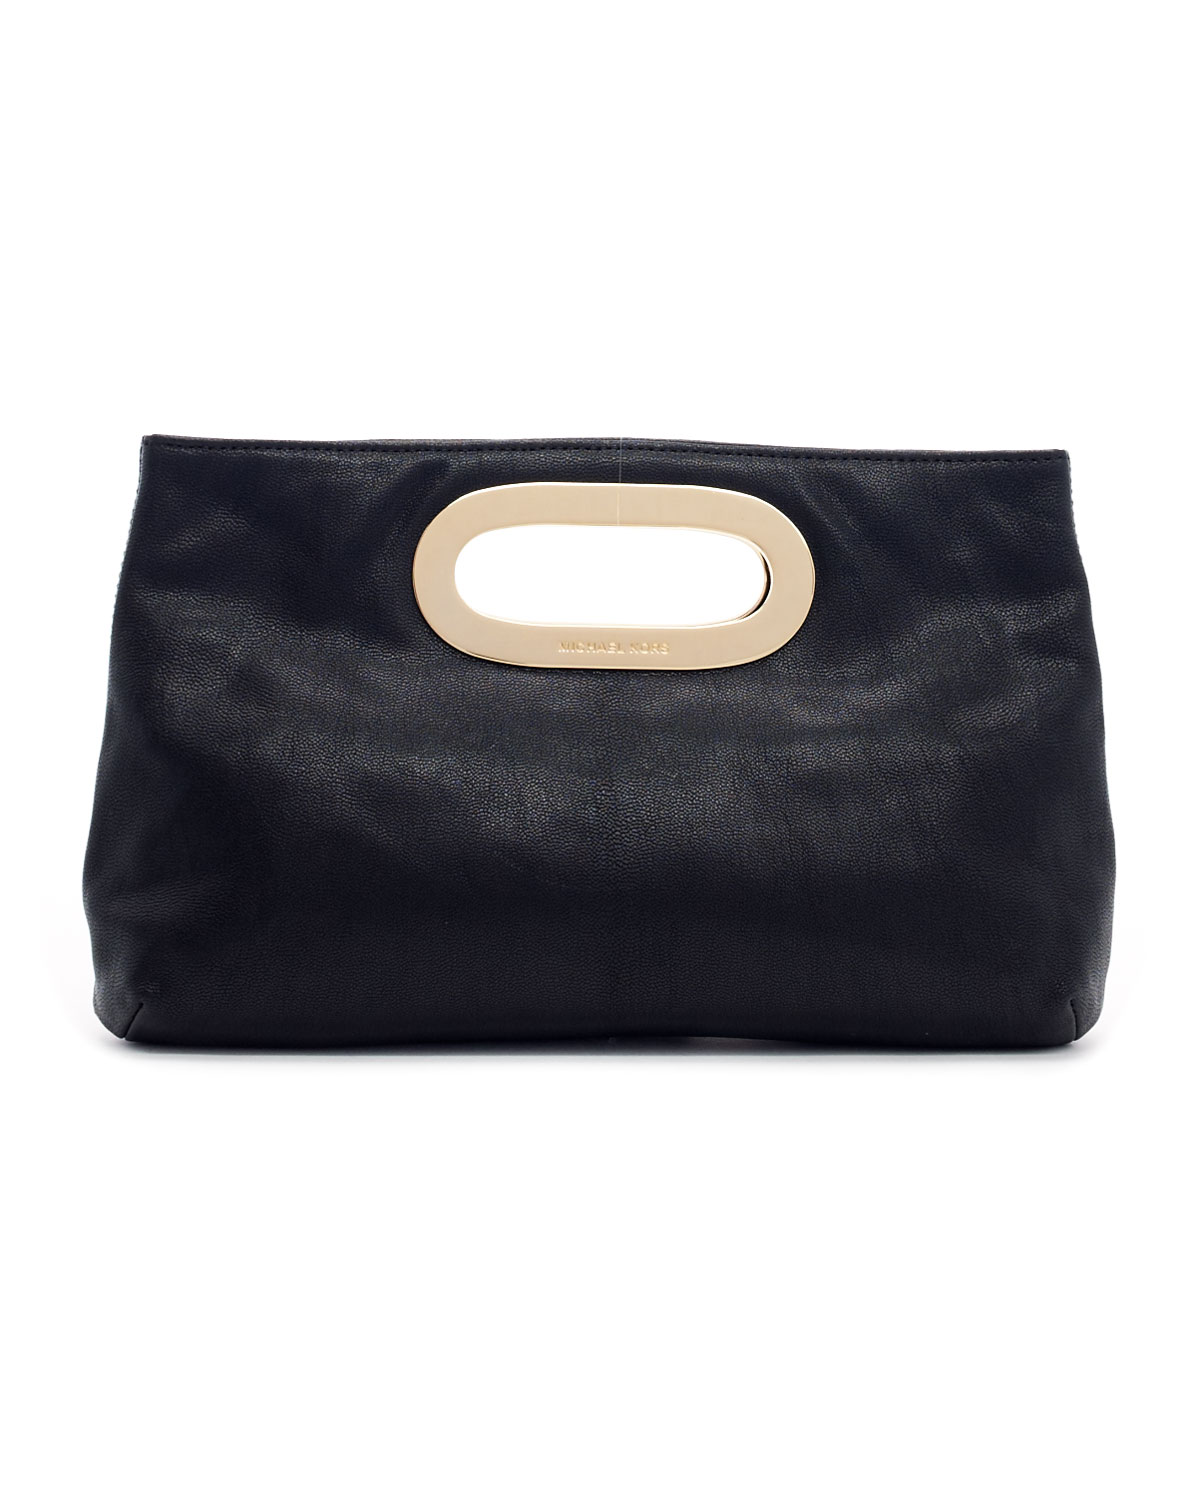 michael michael kors berkley pebbled leather clutch bag in black lyst. Black Bedroom Furniture Sets. Home Design Ideas